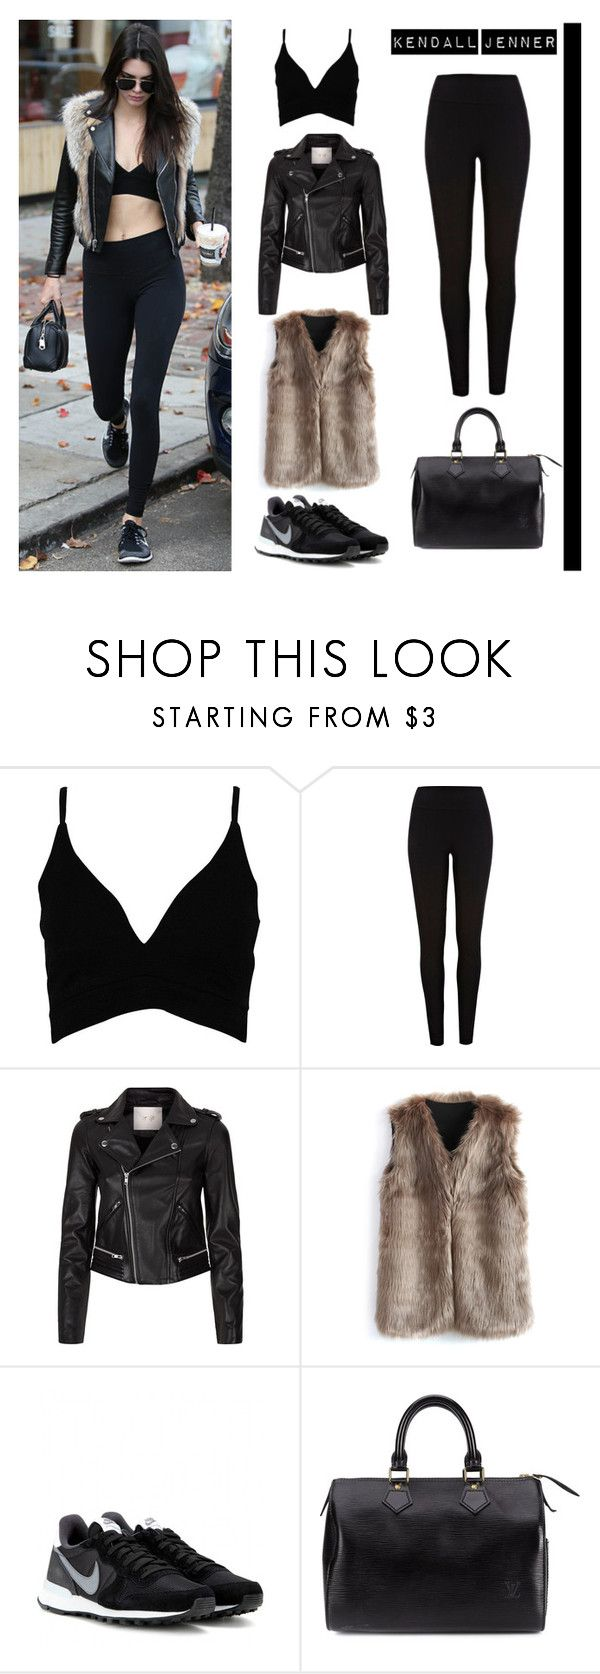 """""""Kendall Jenner"""" by eviejessup on Polyvore featuring Baldwin, River Island, Maje, Chicwish, NIKE and Louis Vuitton"""